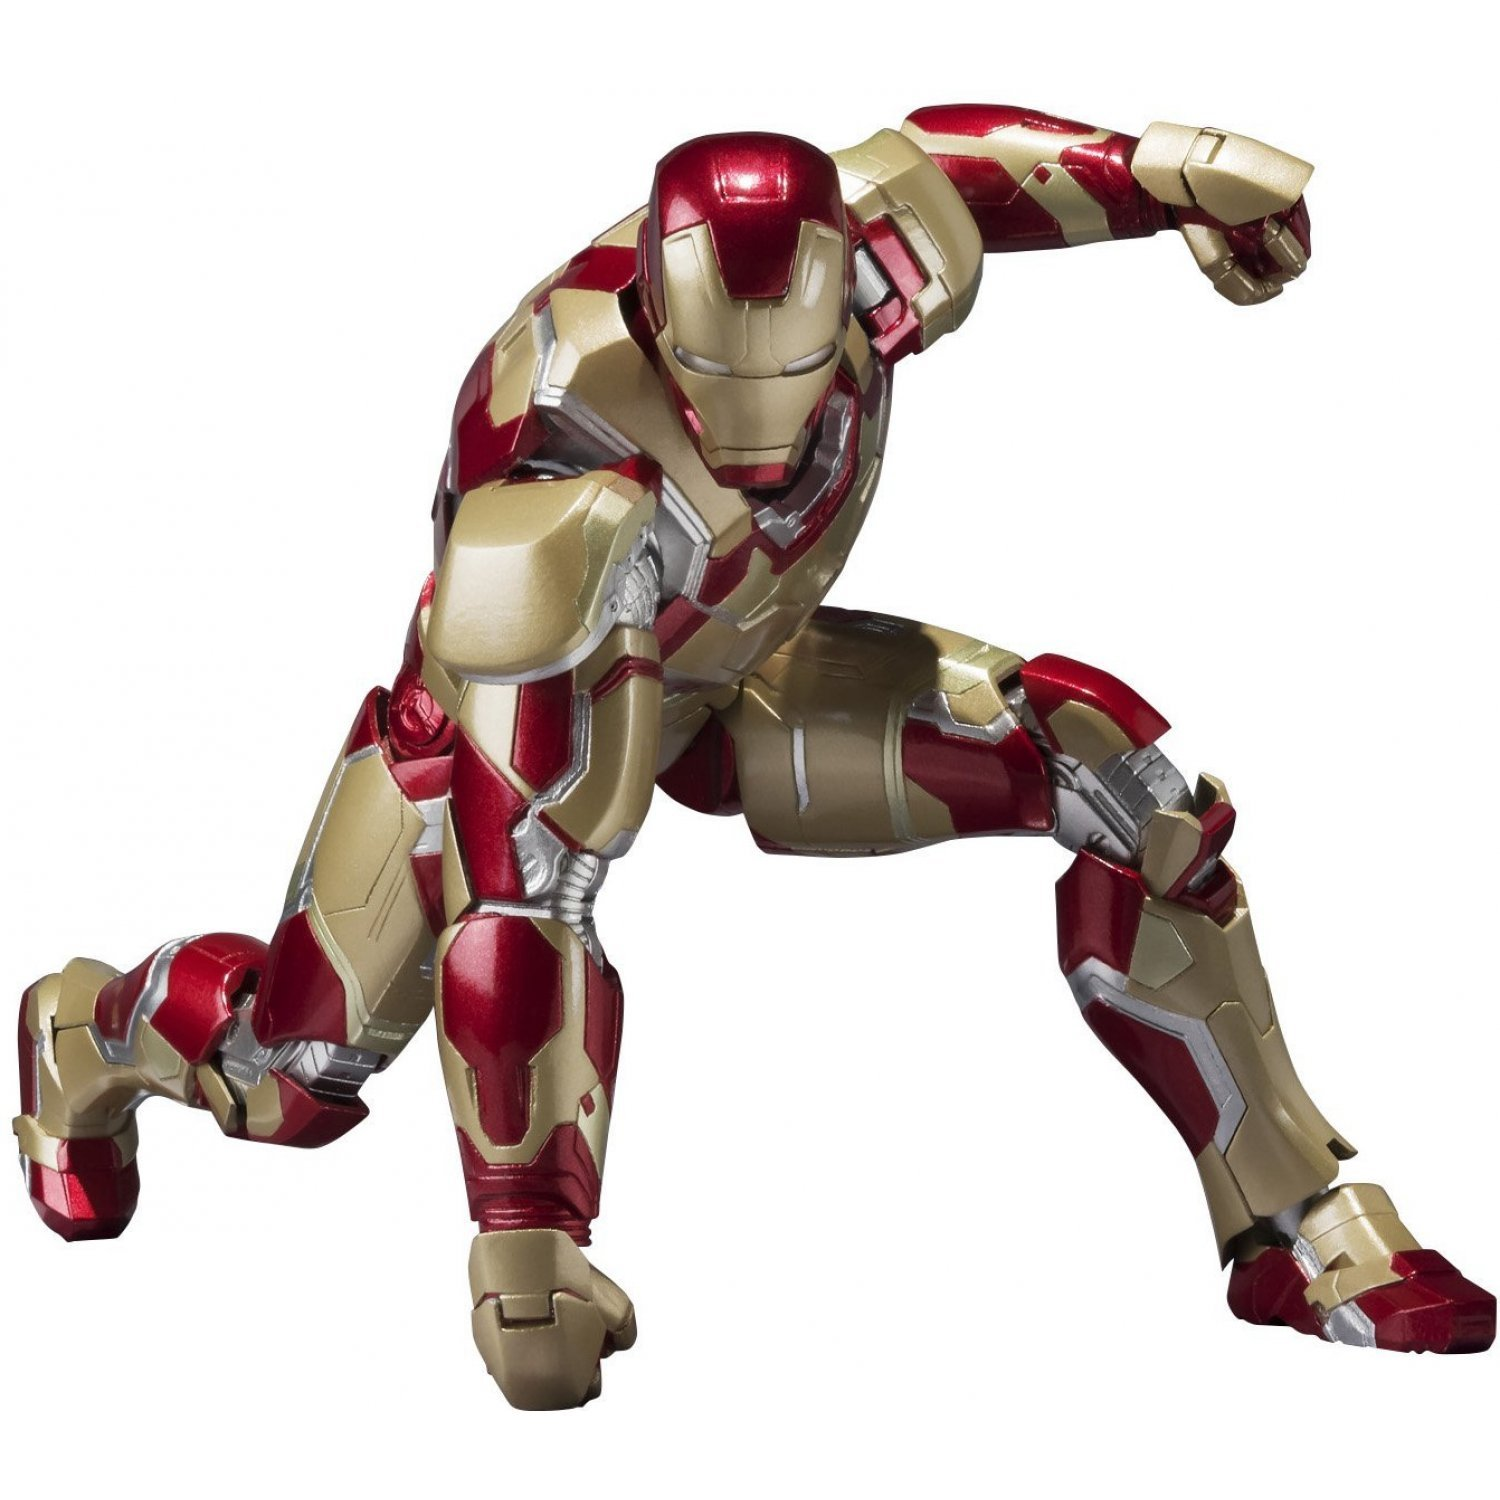 s h figuarts iron man mark 42. Black Bedroom Furniture Sets. Home Design Ideas